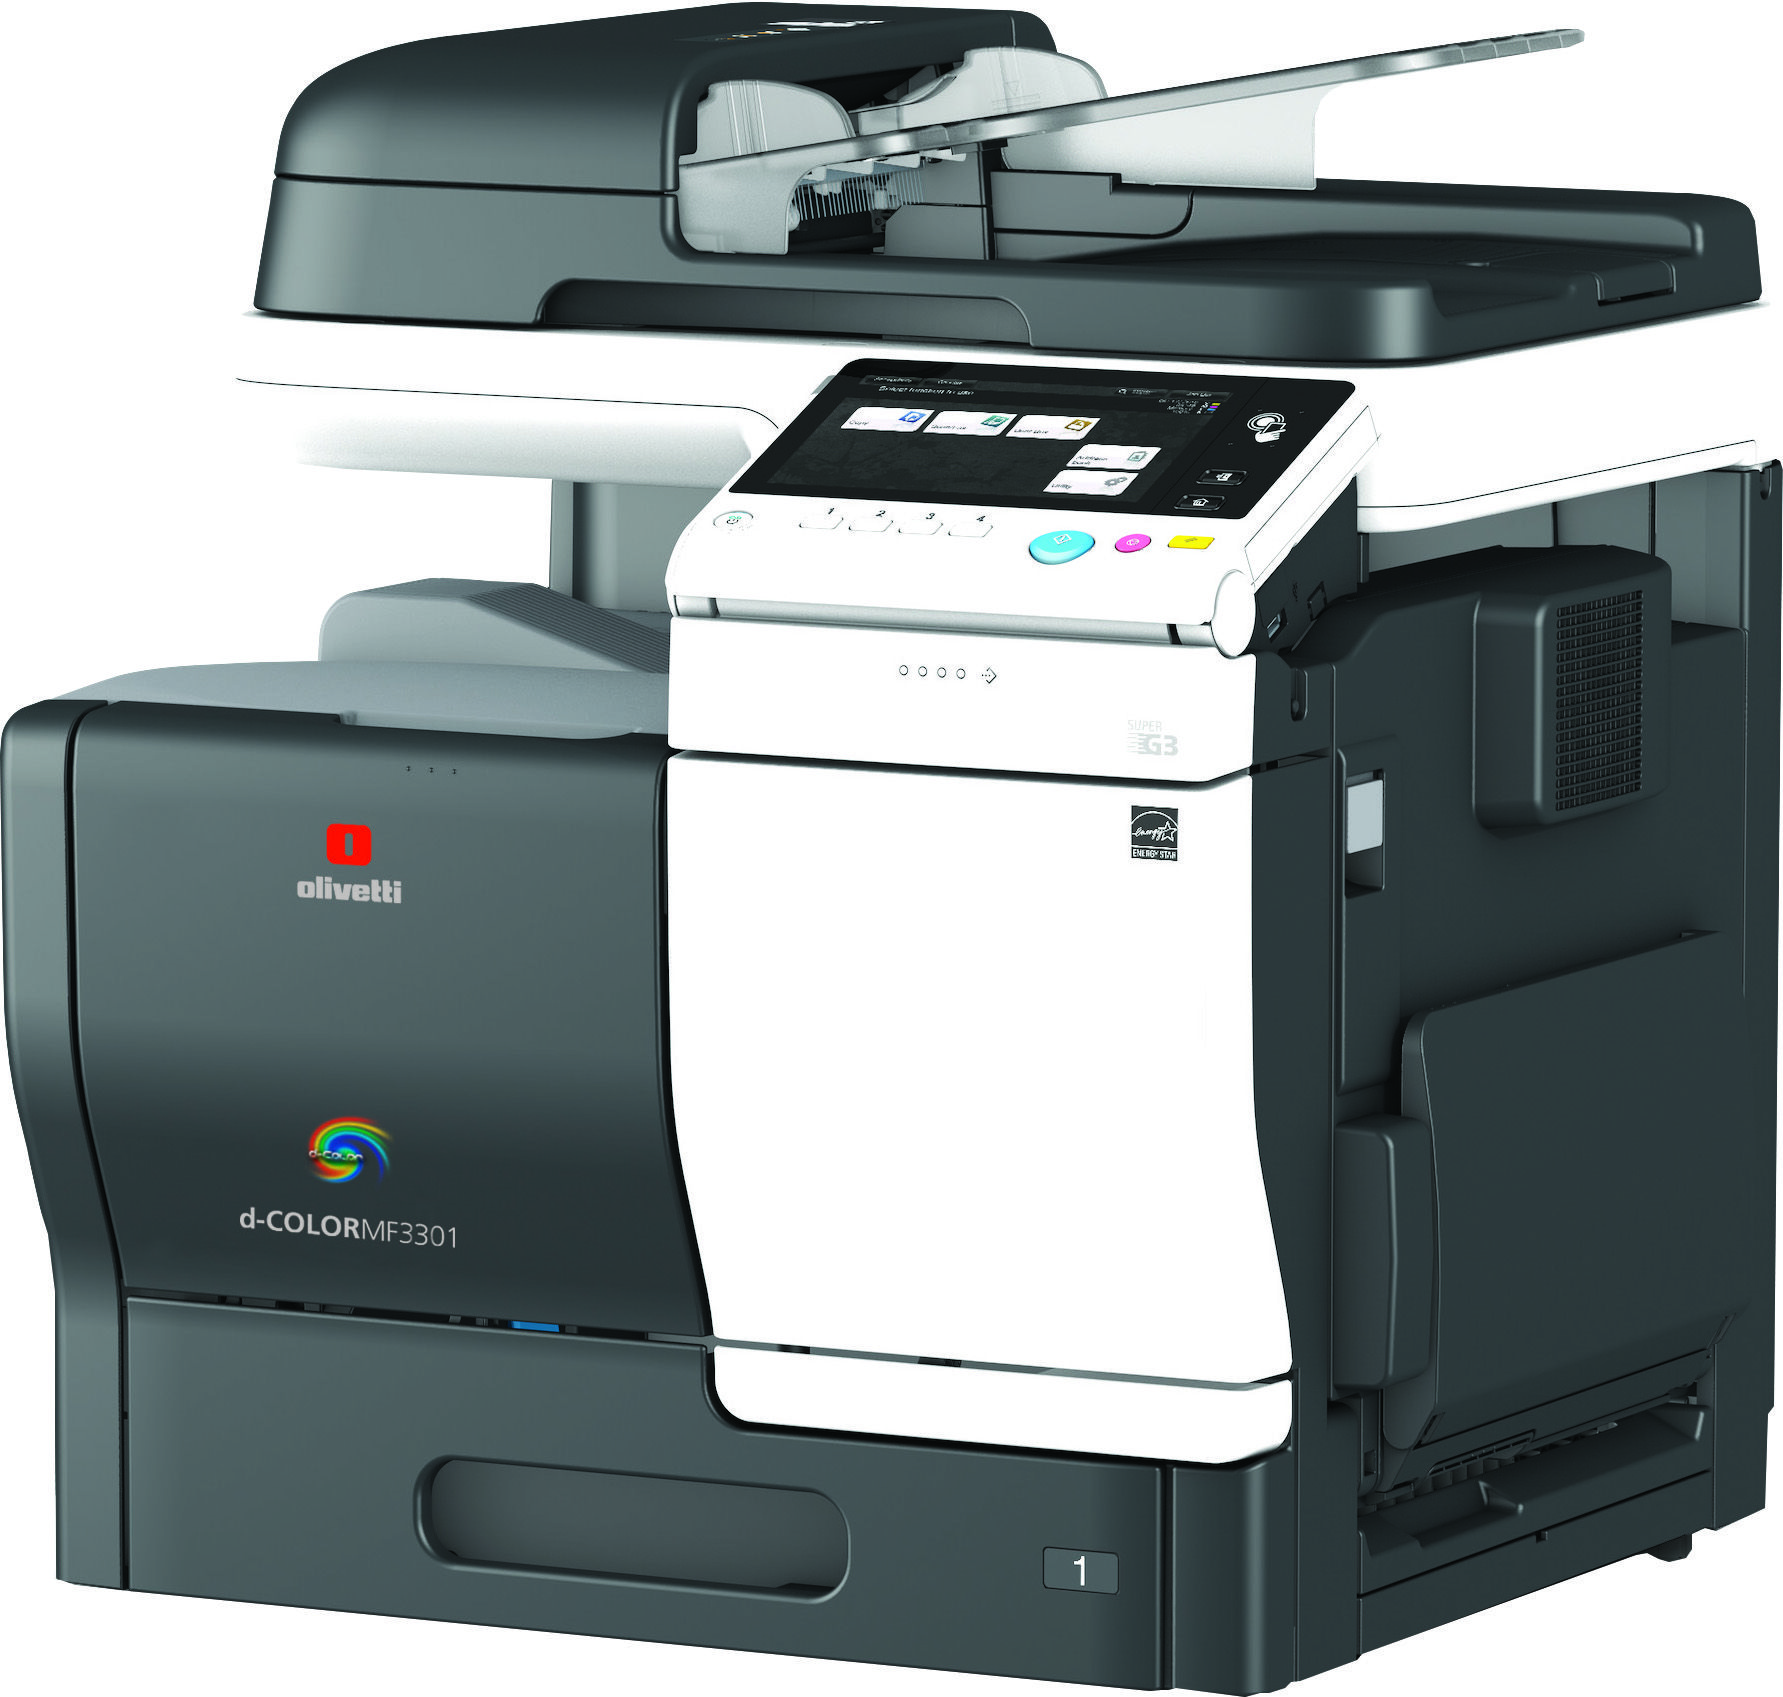 Olivetti S Range Of A4 Colour Copier Printer Scanner Mfps